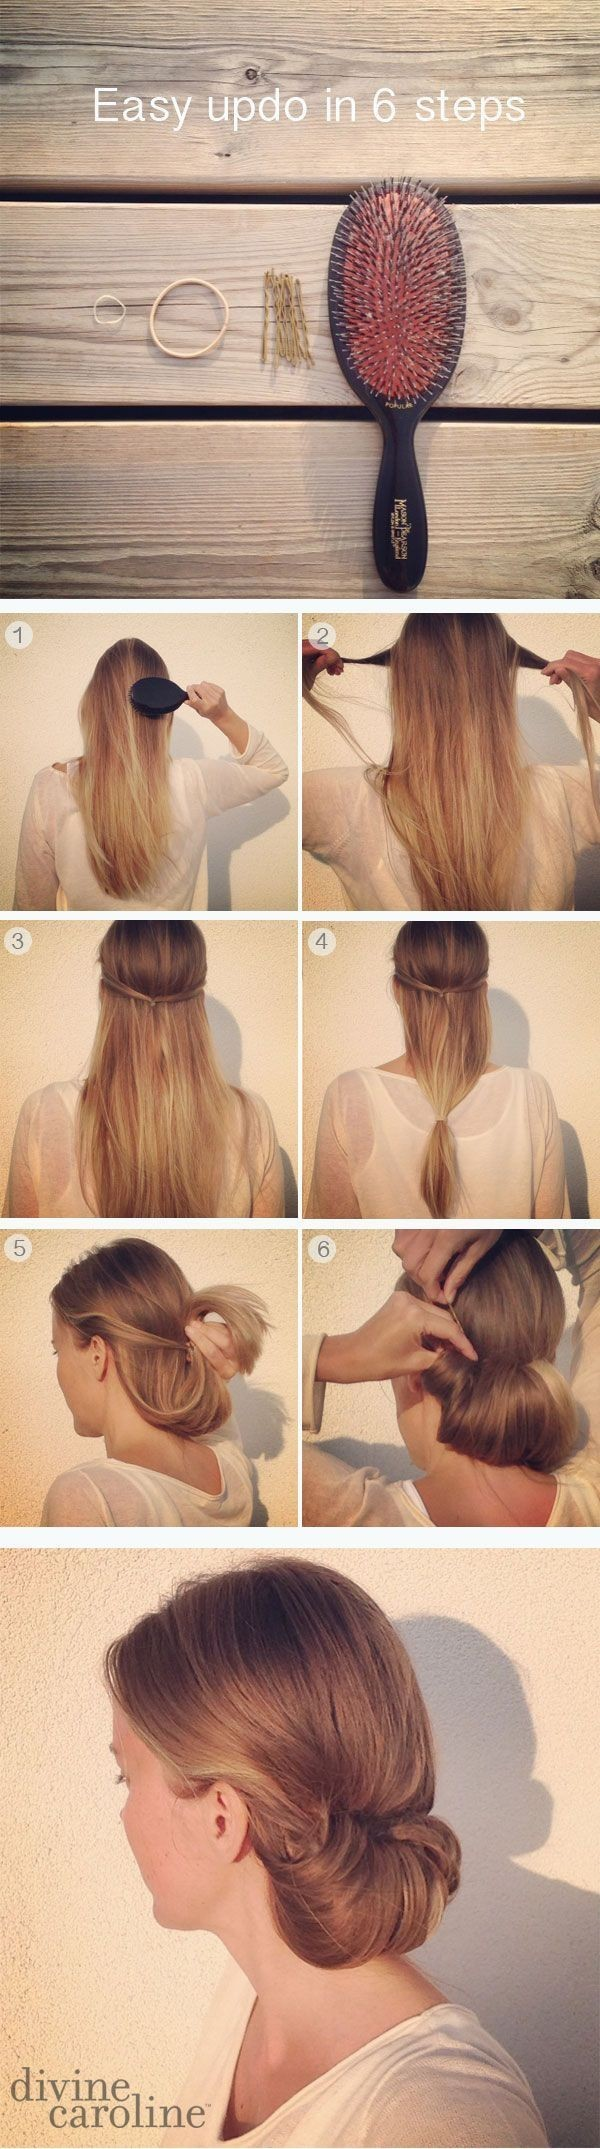 Simple updo for long hair